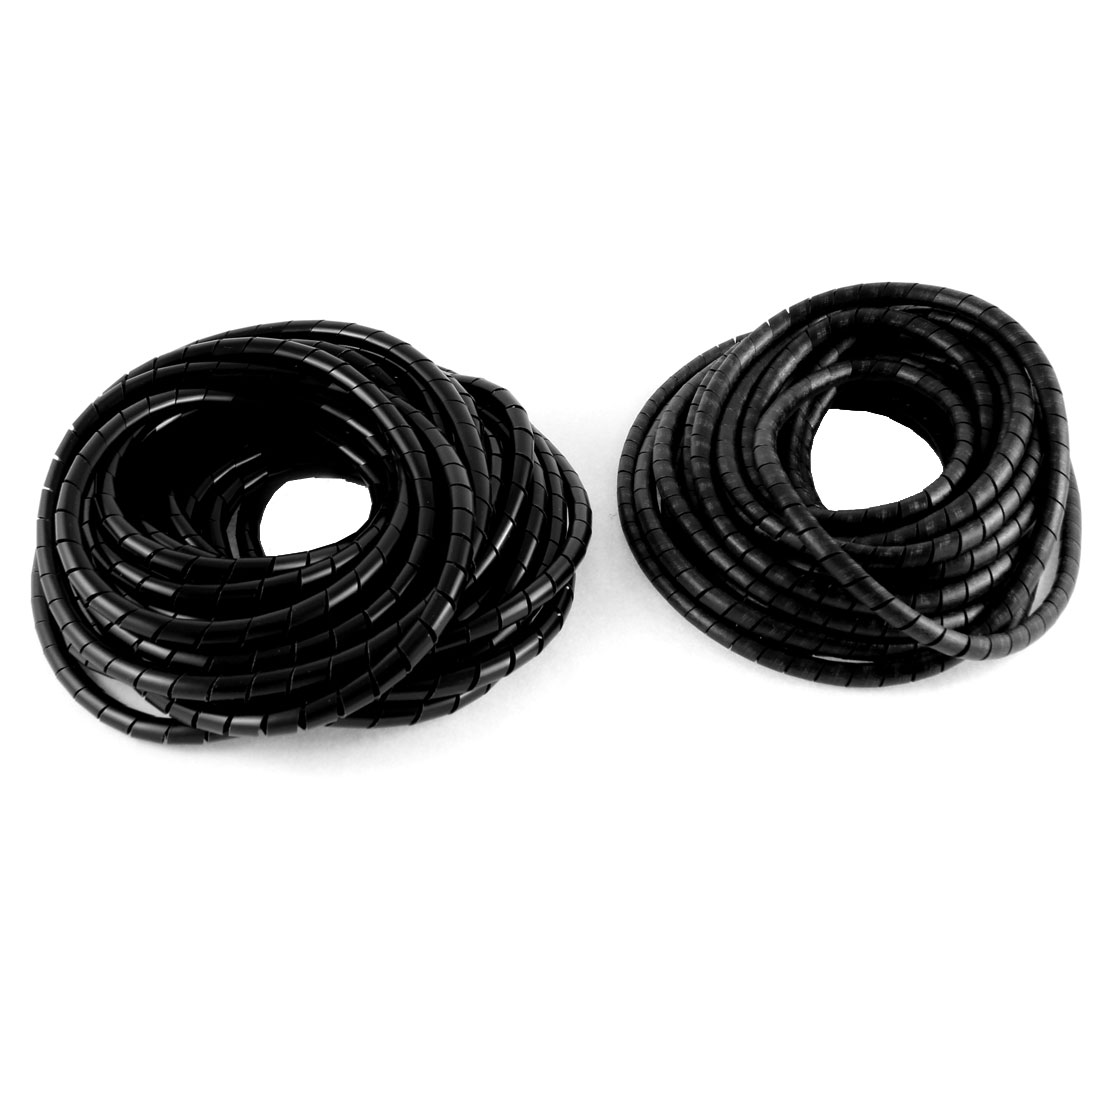 2pcs 33ft 10M Long 8mm OD Black Flexible Wire Spiral Wrap Sleeve Band Tube Cable Manager Protector